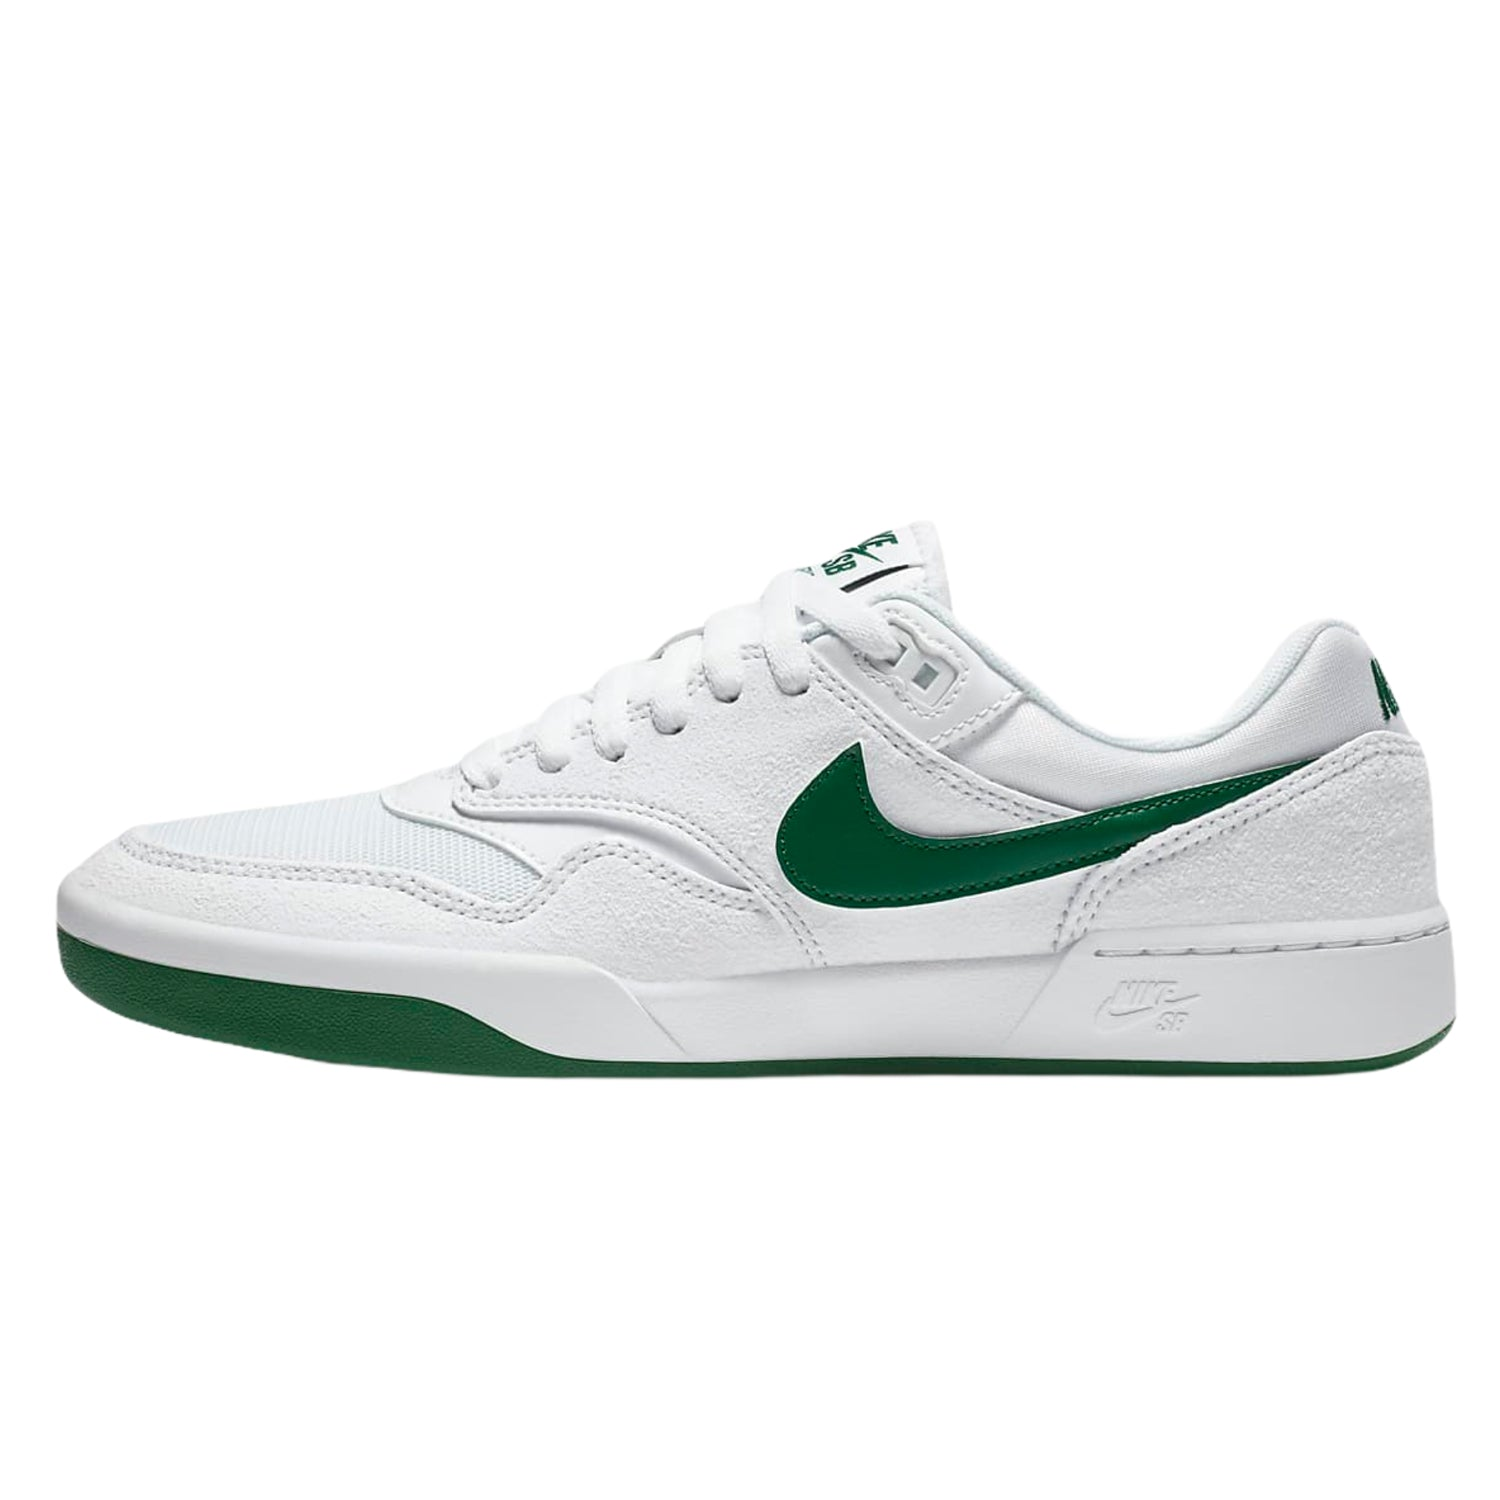 Nike SB GTS Return White/Pine Green